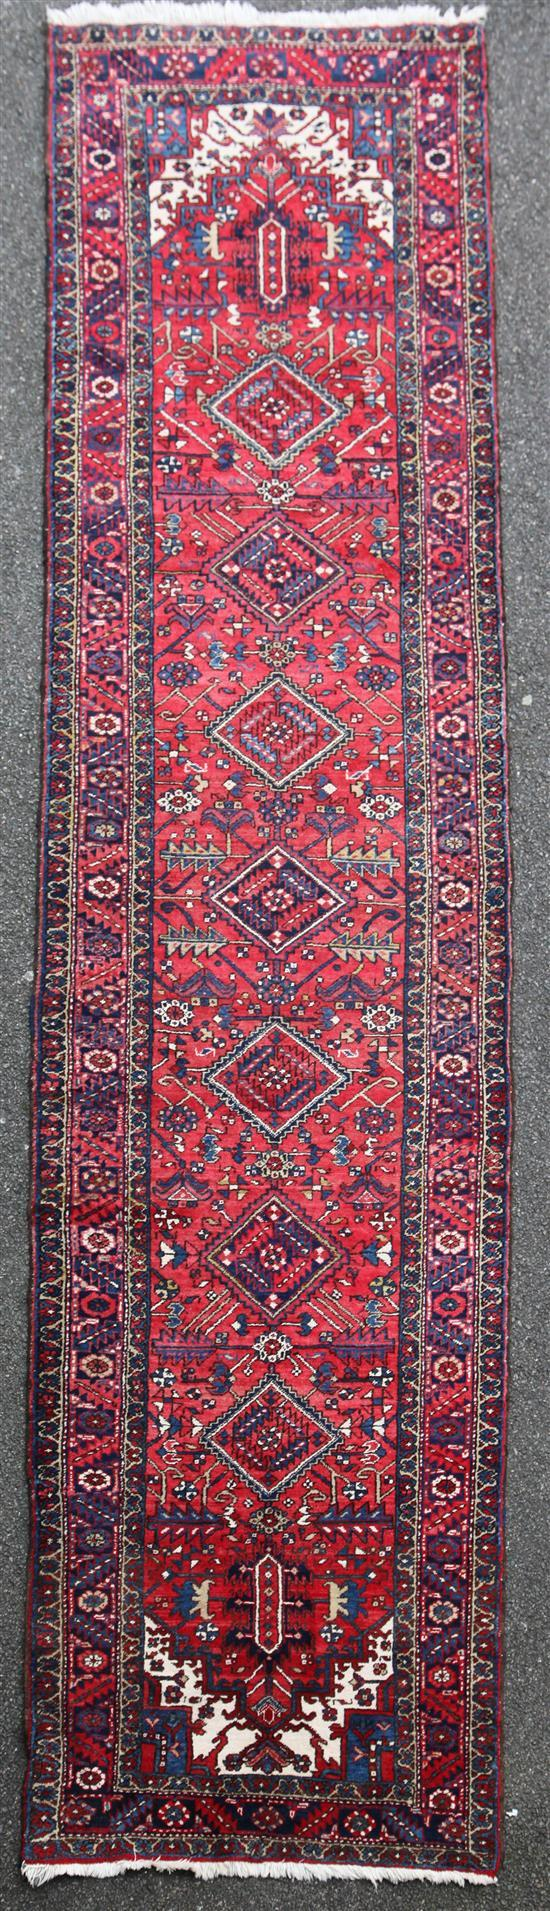 A Persian Heriz runner, 14ft 2in by 3ft 9in.